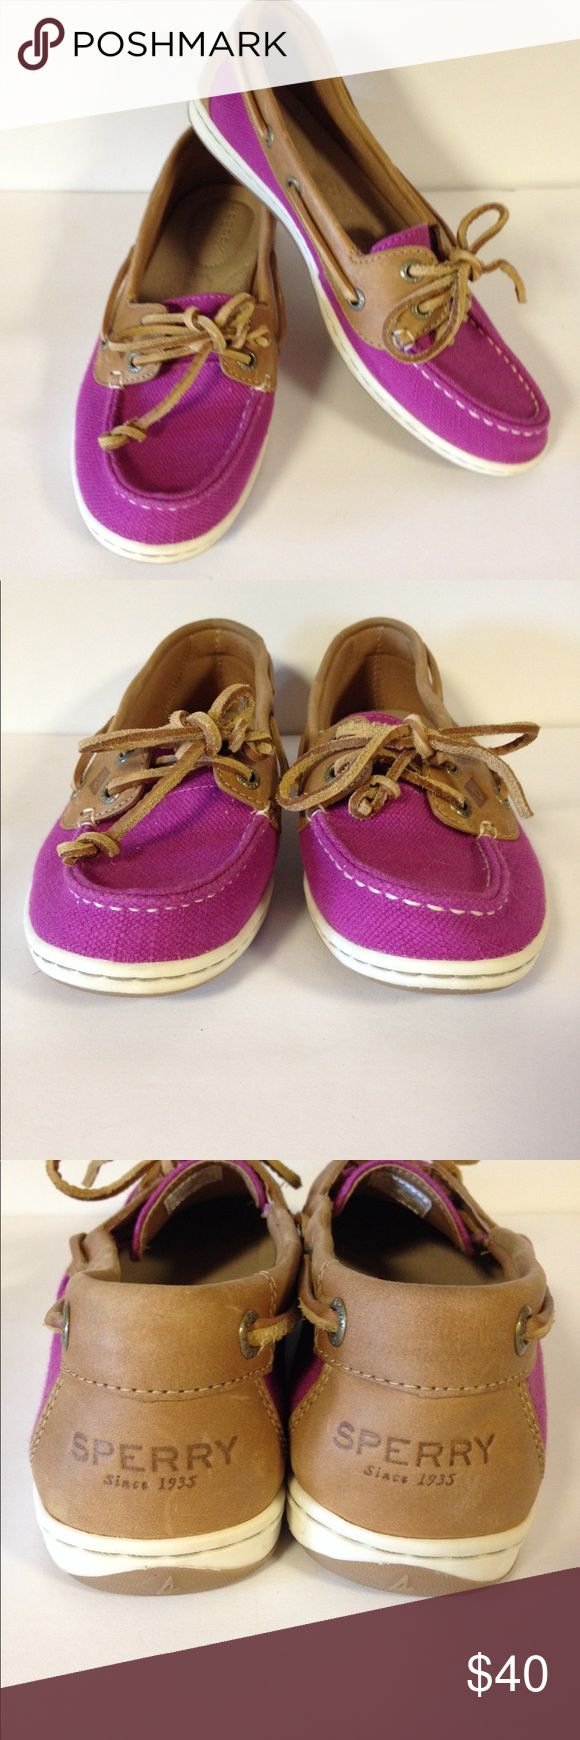 Sperry Top Sider shoes purple linen 6 1/2 Excellent preloved condition.  Linen like material with leather and leather strings. Size 6 1/2.  Clean. Sperry Shoes Flats & Loafers